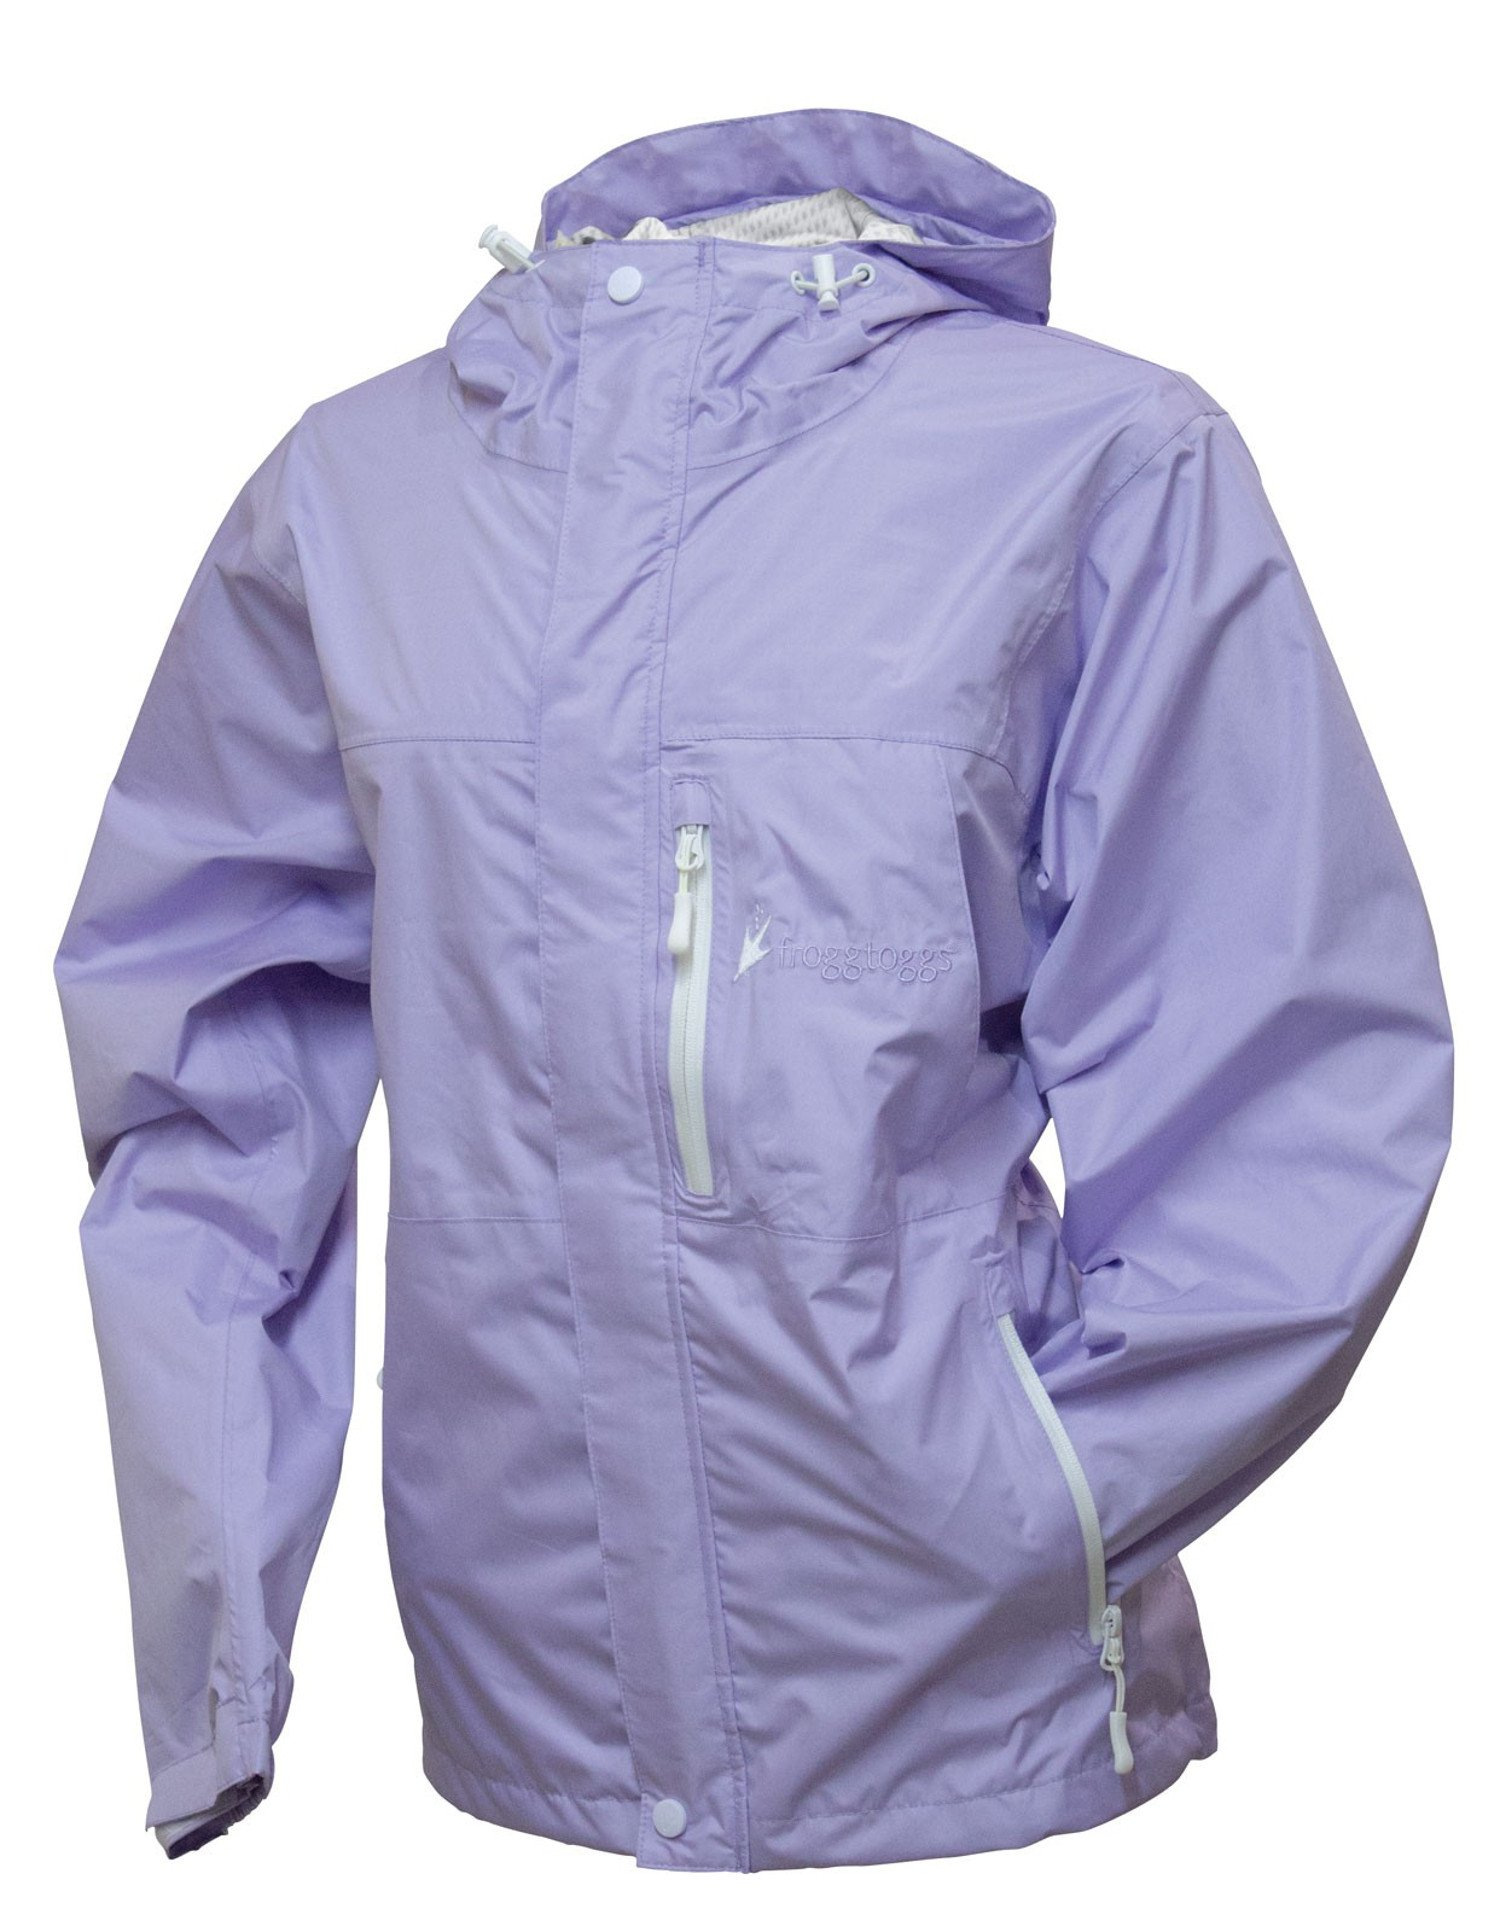 NT65501-65LG Women's Toad Rage Jacket Purple Large